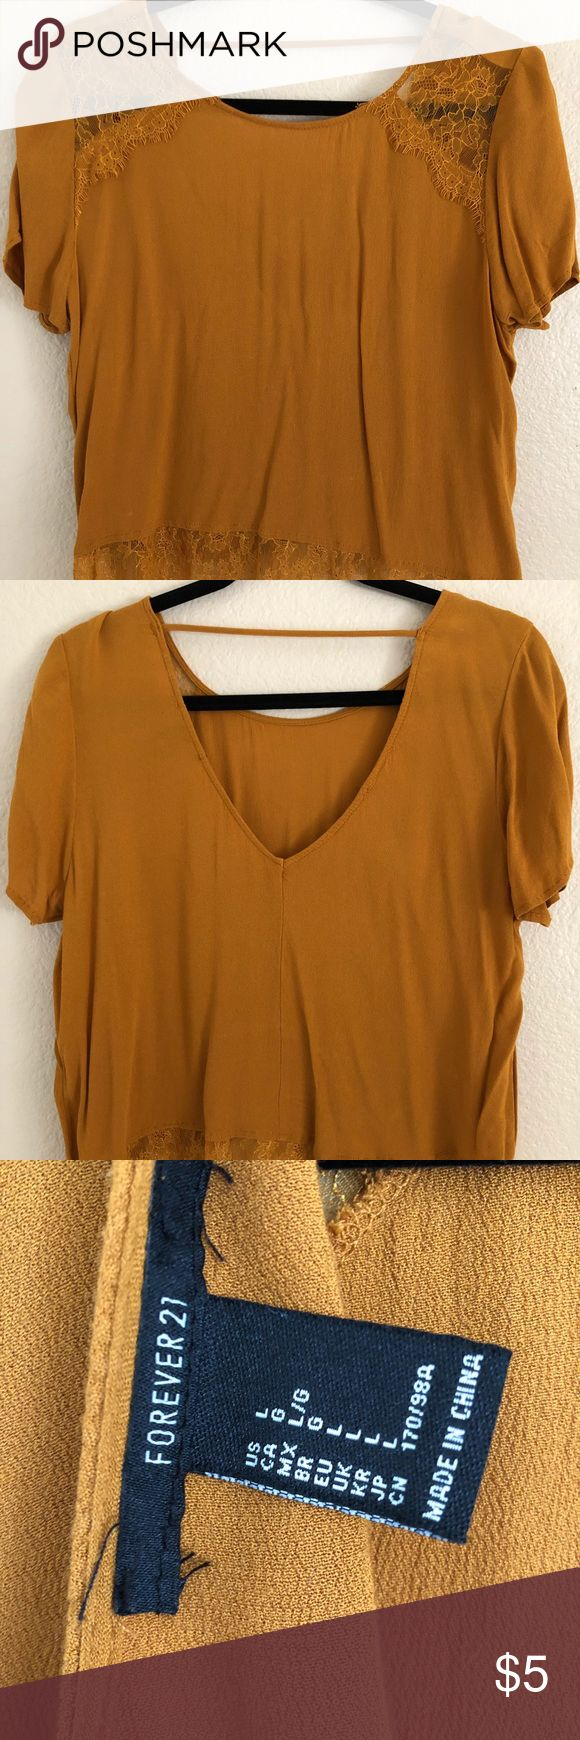 Crop top Blouse short sleeves Camel color crop top v neck opening shape from back very cool,stretchy material lace there is two wash off stains Forever 21 Tops Crop Tops